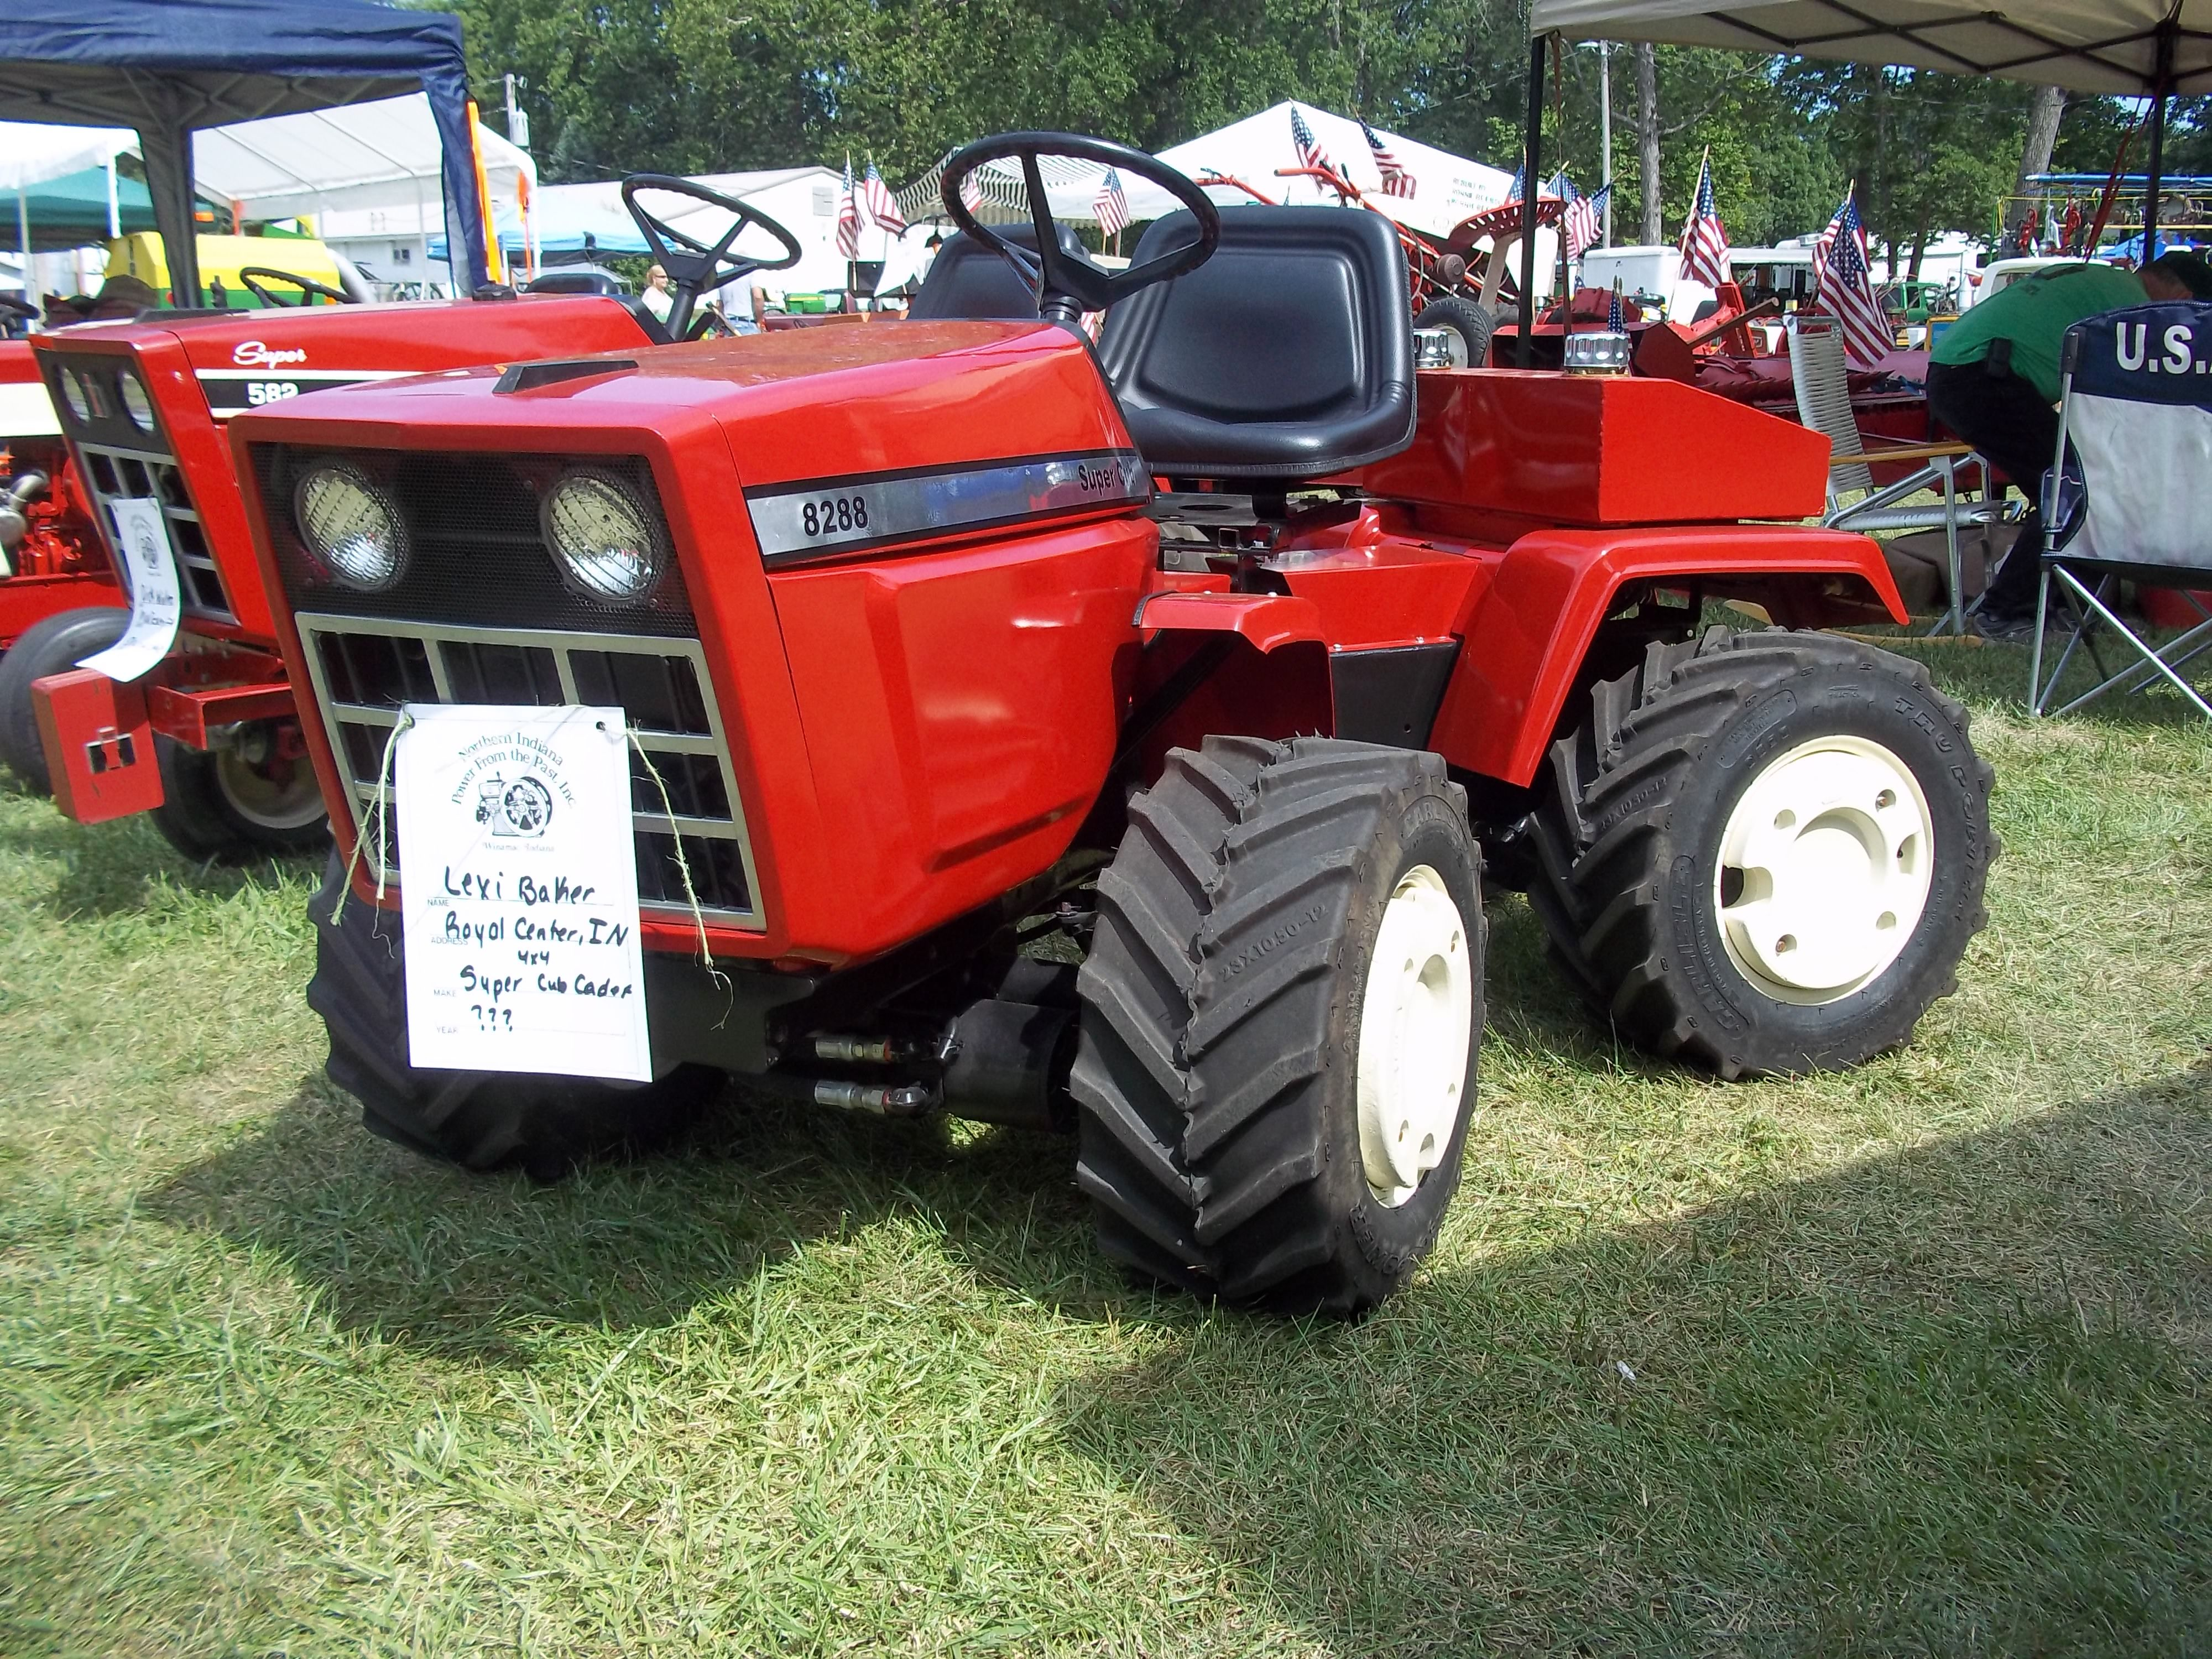 Ih Garden Tractors : Articulated ih garden tractor international farmall